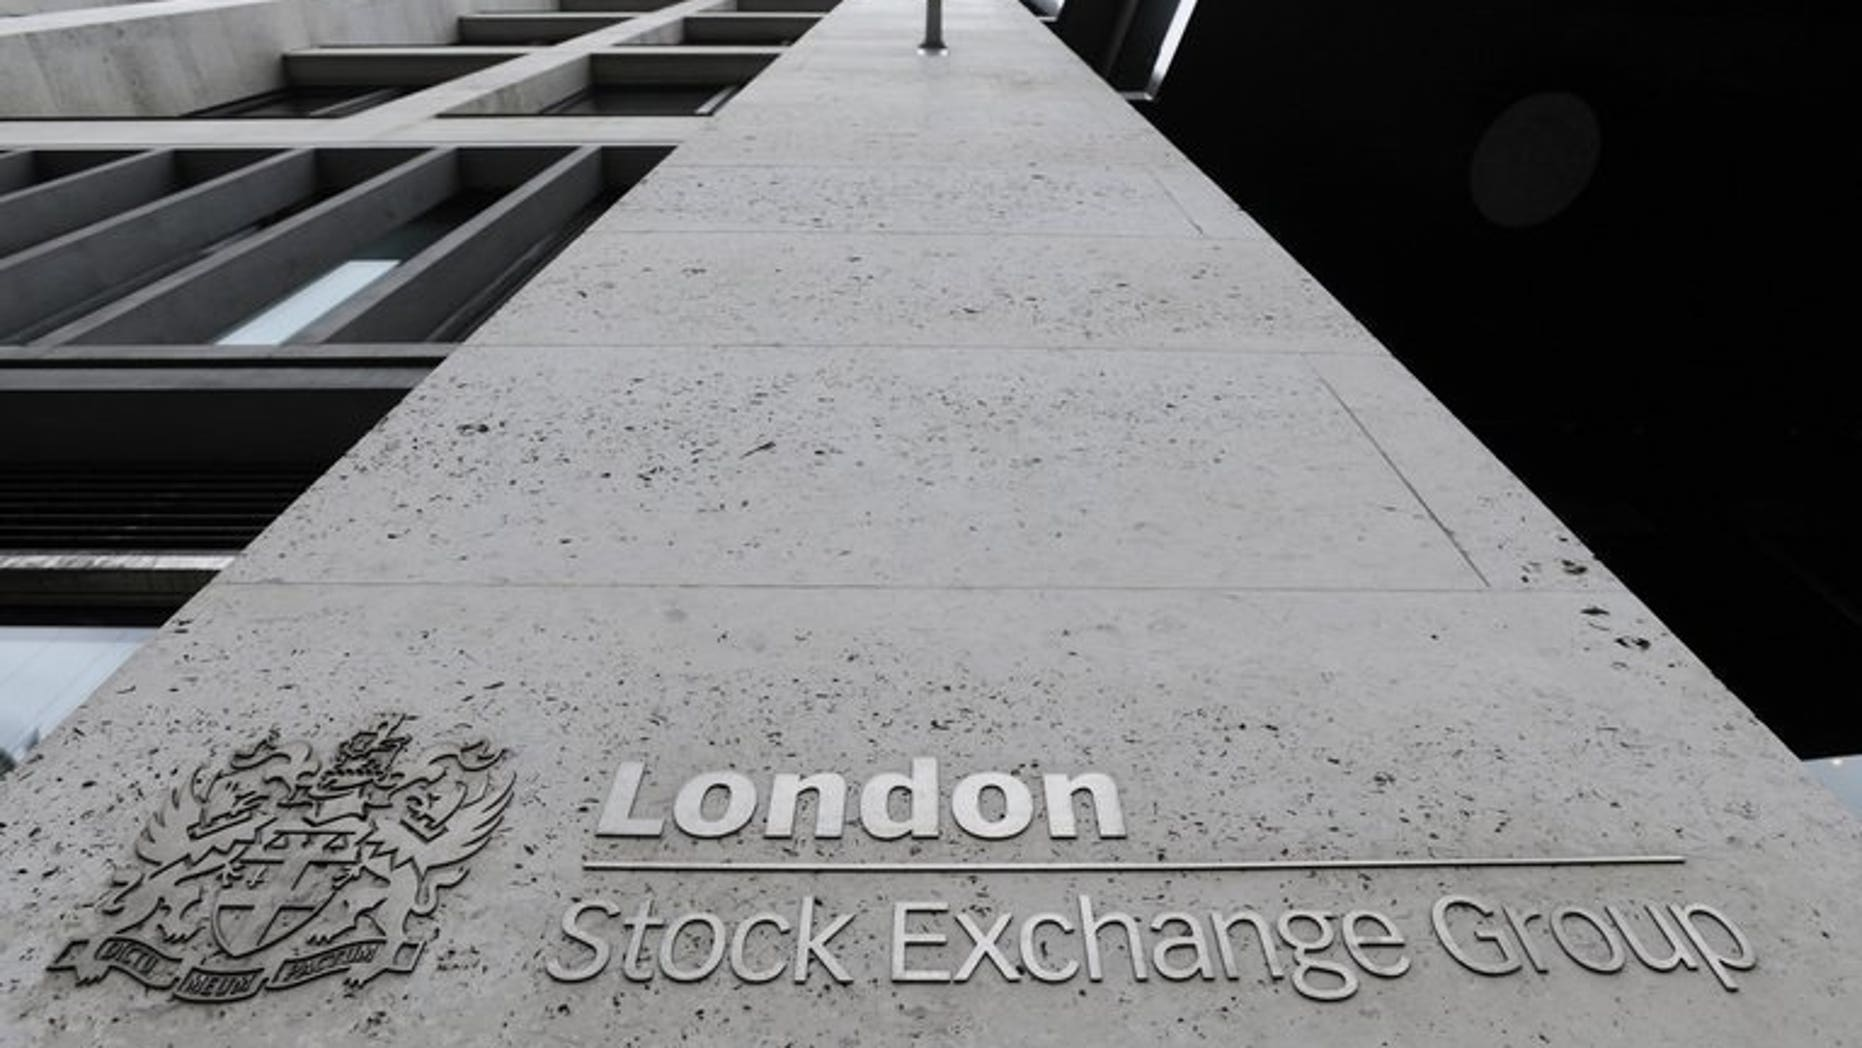 The London Stock Exchange is pictured on September 22, 2011. London shares closed higher as the Bank of England and the European Central Bank held rates and with dealers tracking the G20 summit in Russia where Syria is the focus.